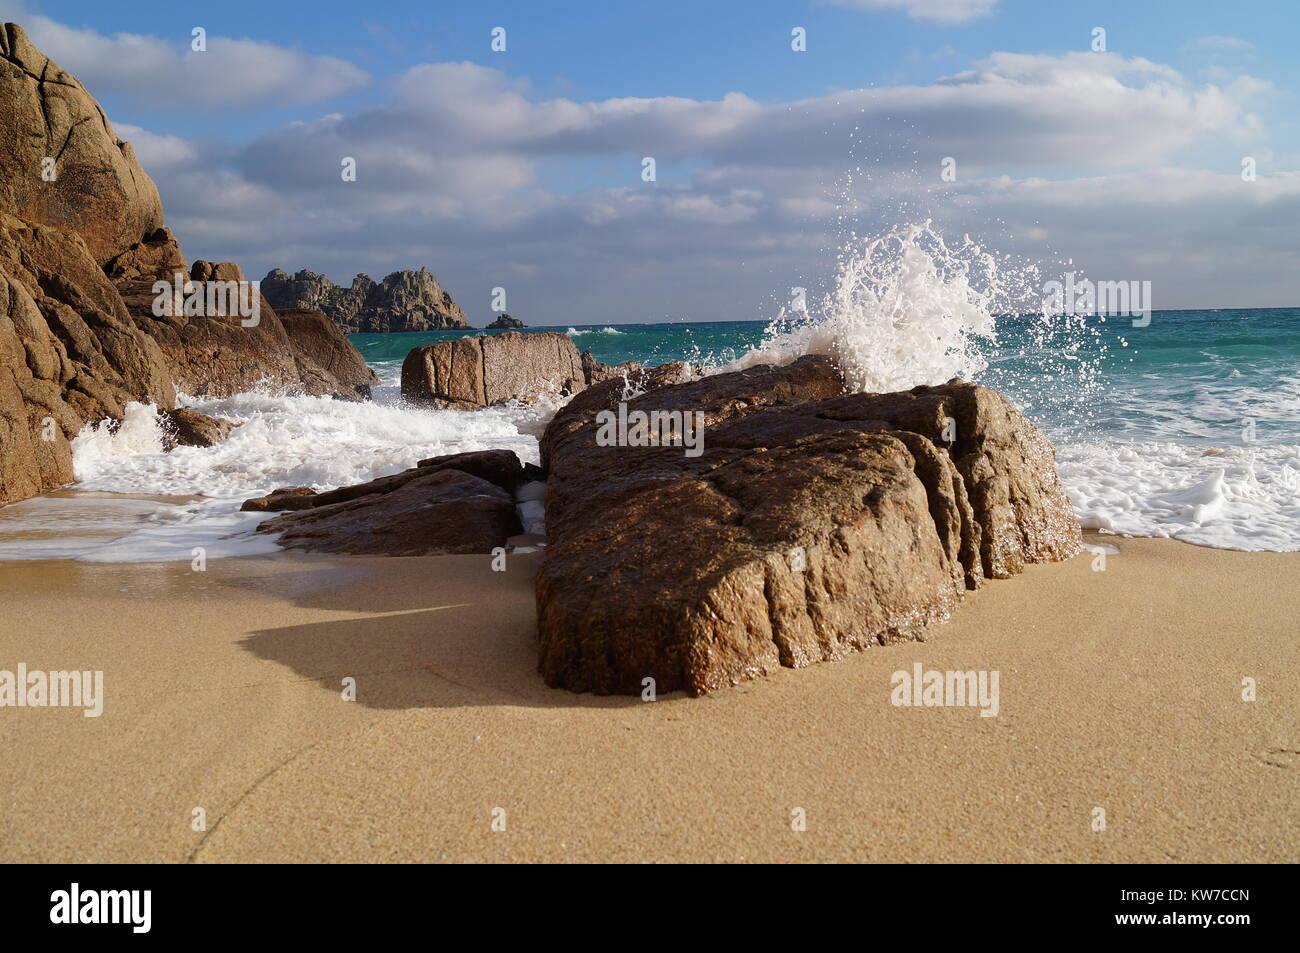 Crashing waves over a large rock on Porthcurno Beach - Stock Image